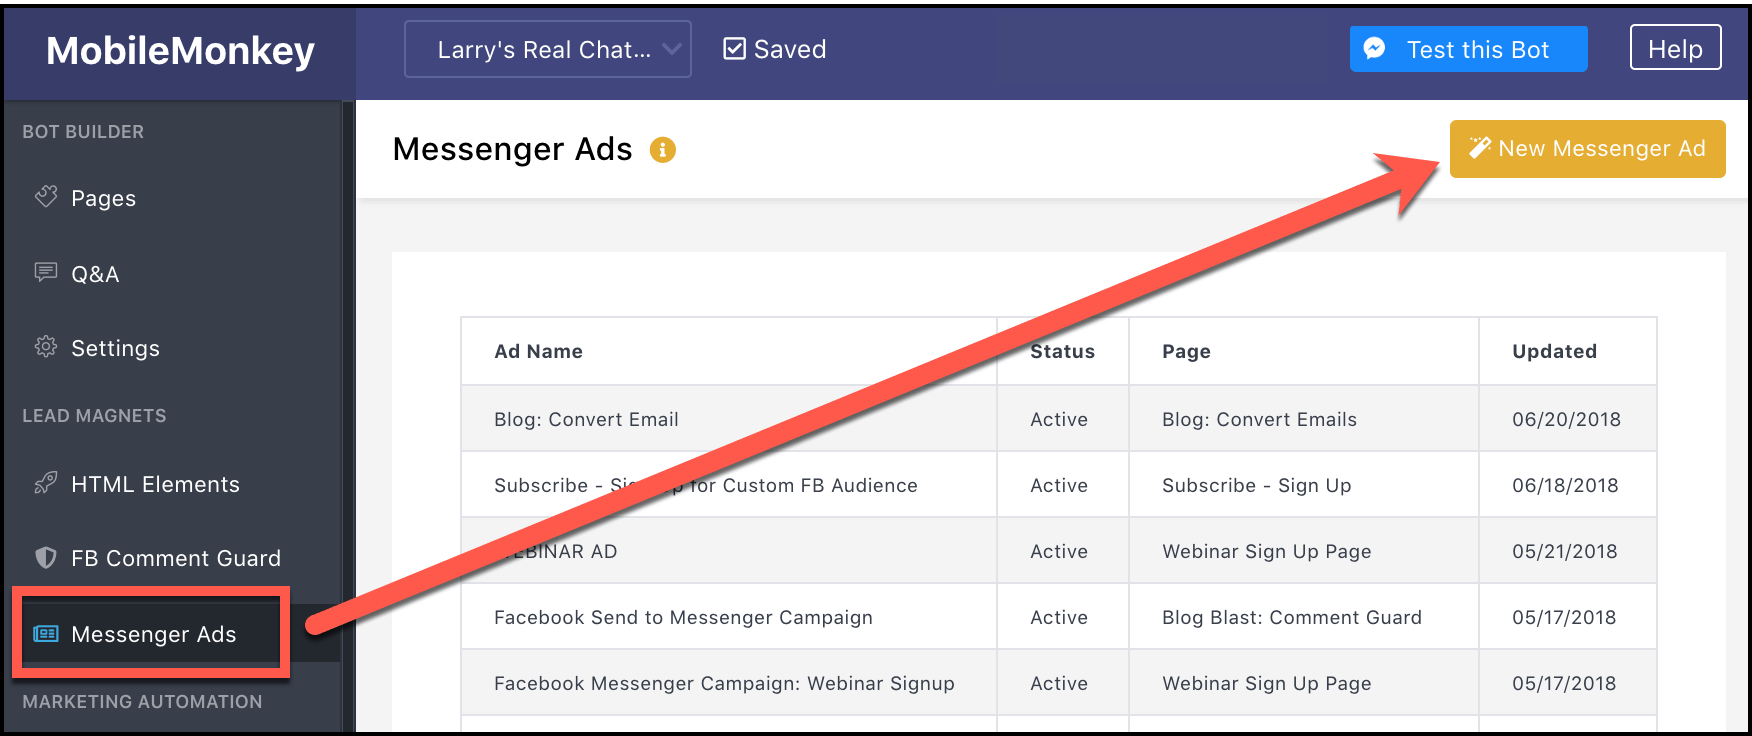 create new messenger ad